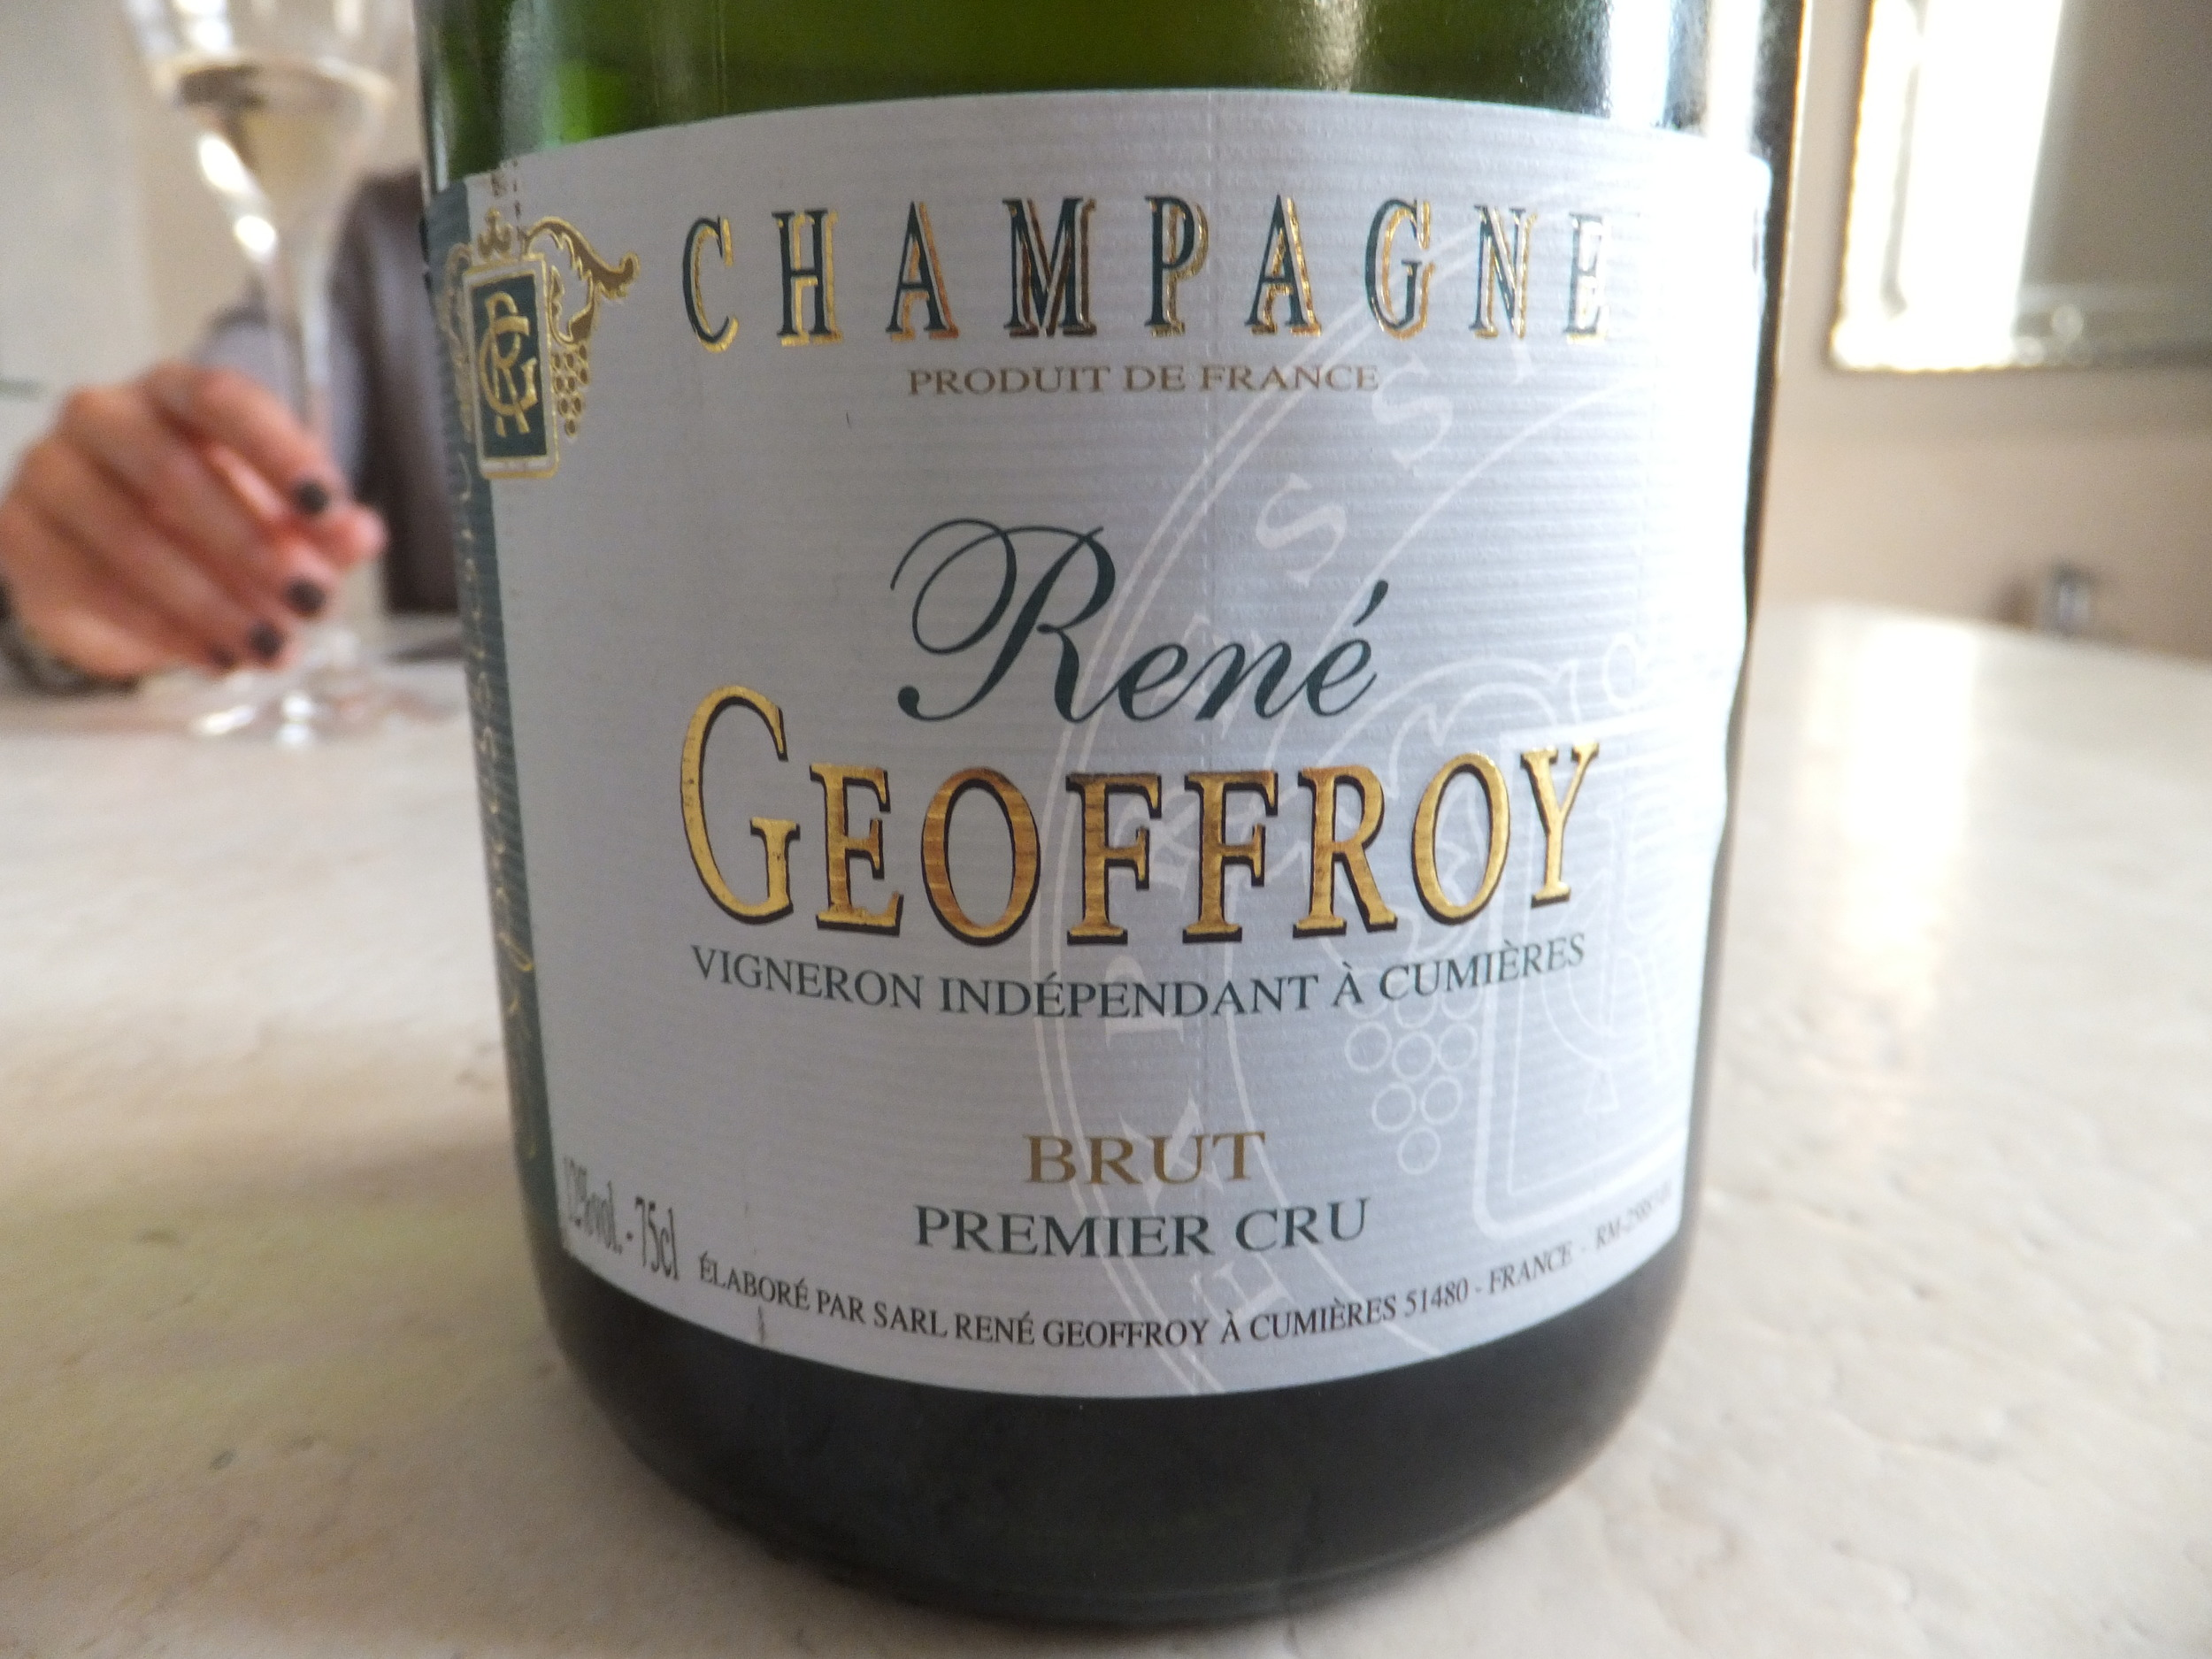 One of the loveliest small producer Champagne houses (Elspeth Copeland)